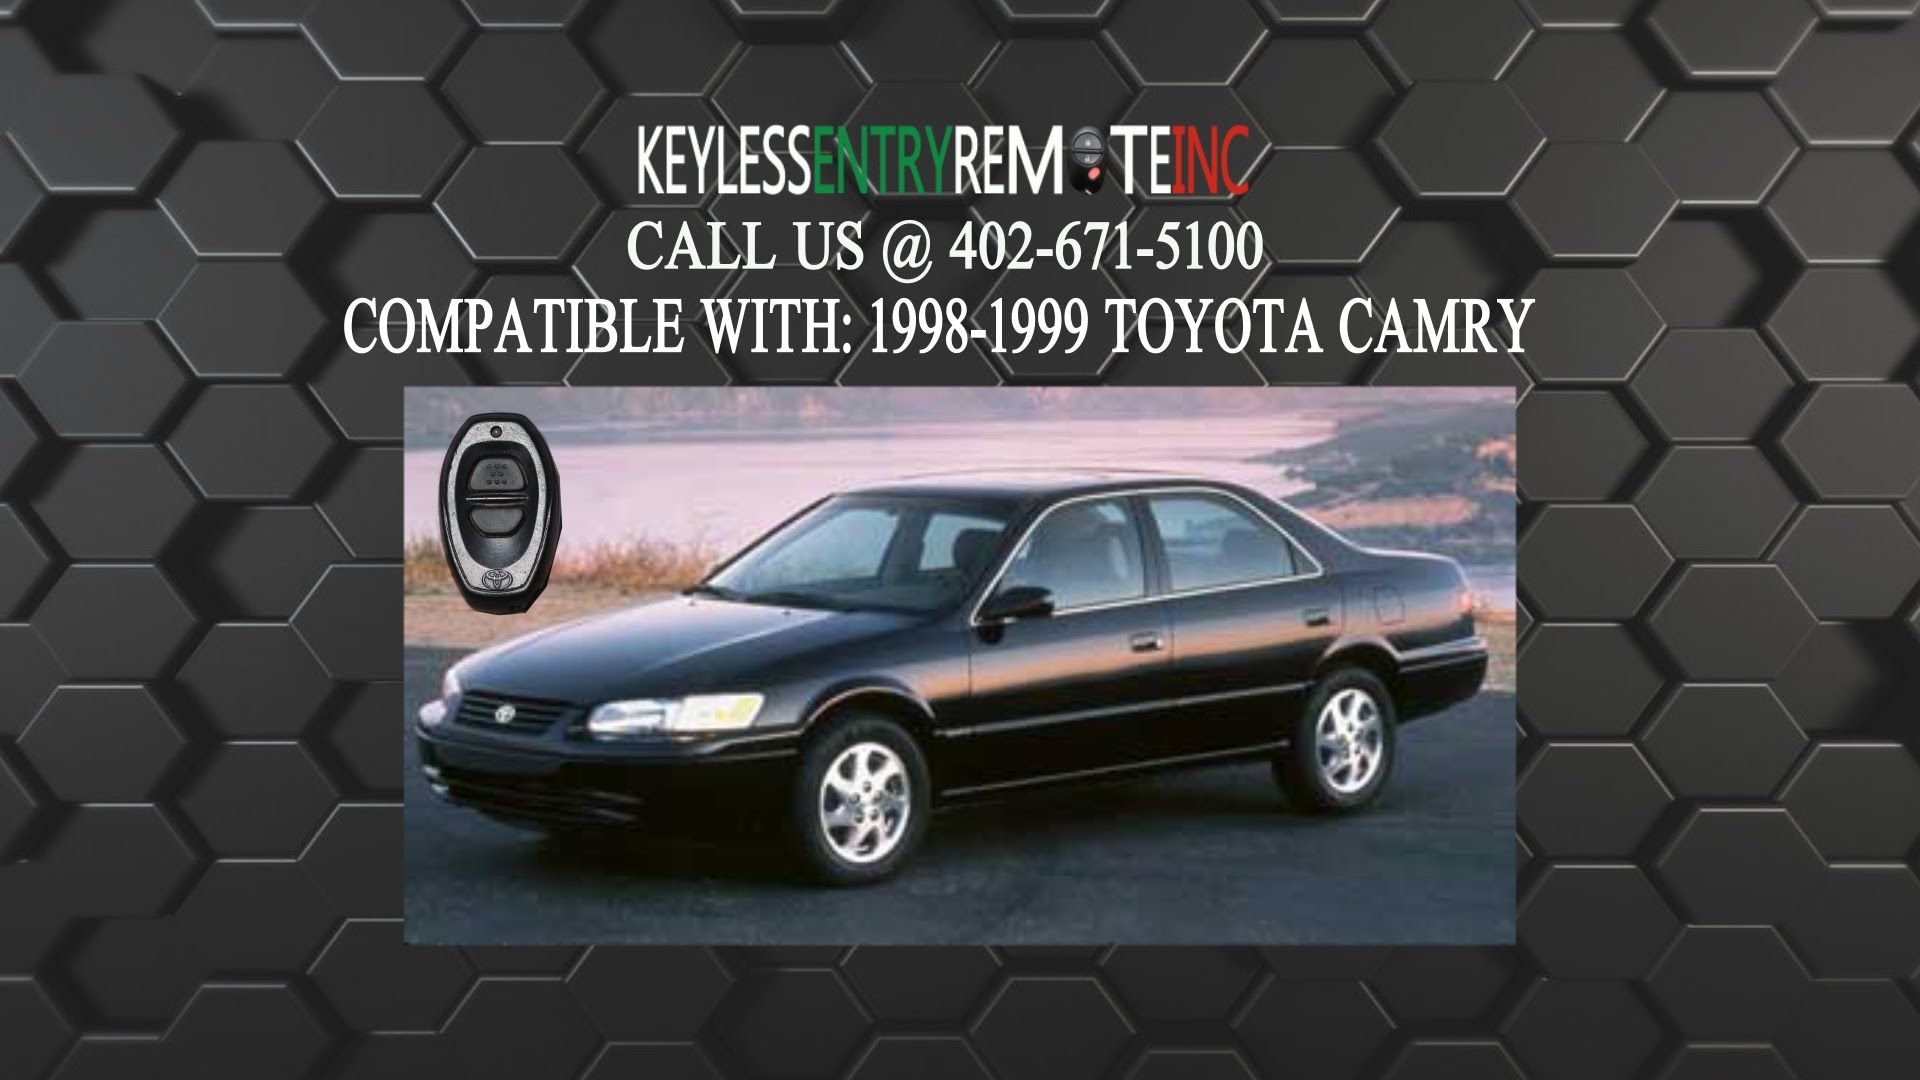 How To Replace A Toyota Camry Key Fob Battery 1998 2002 How To